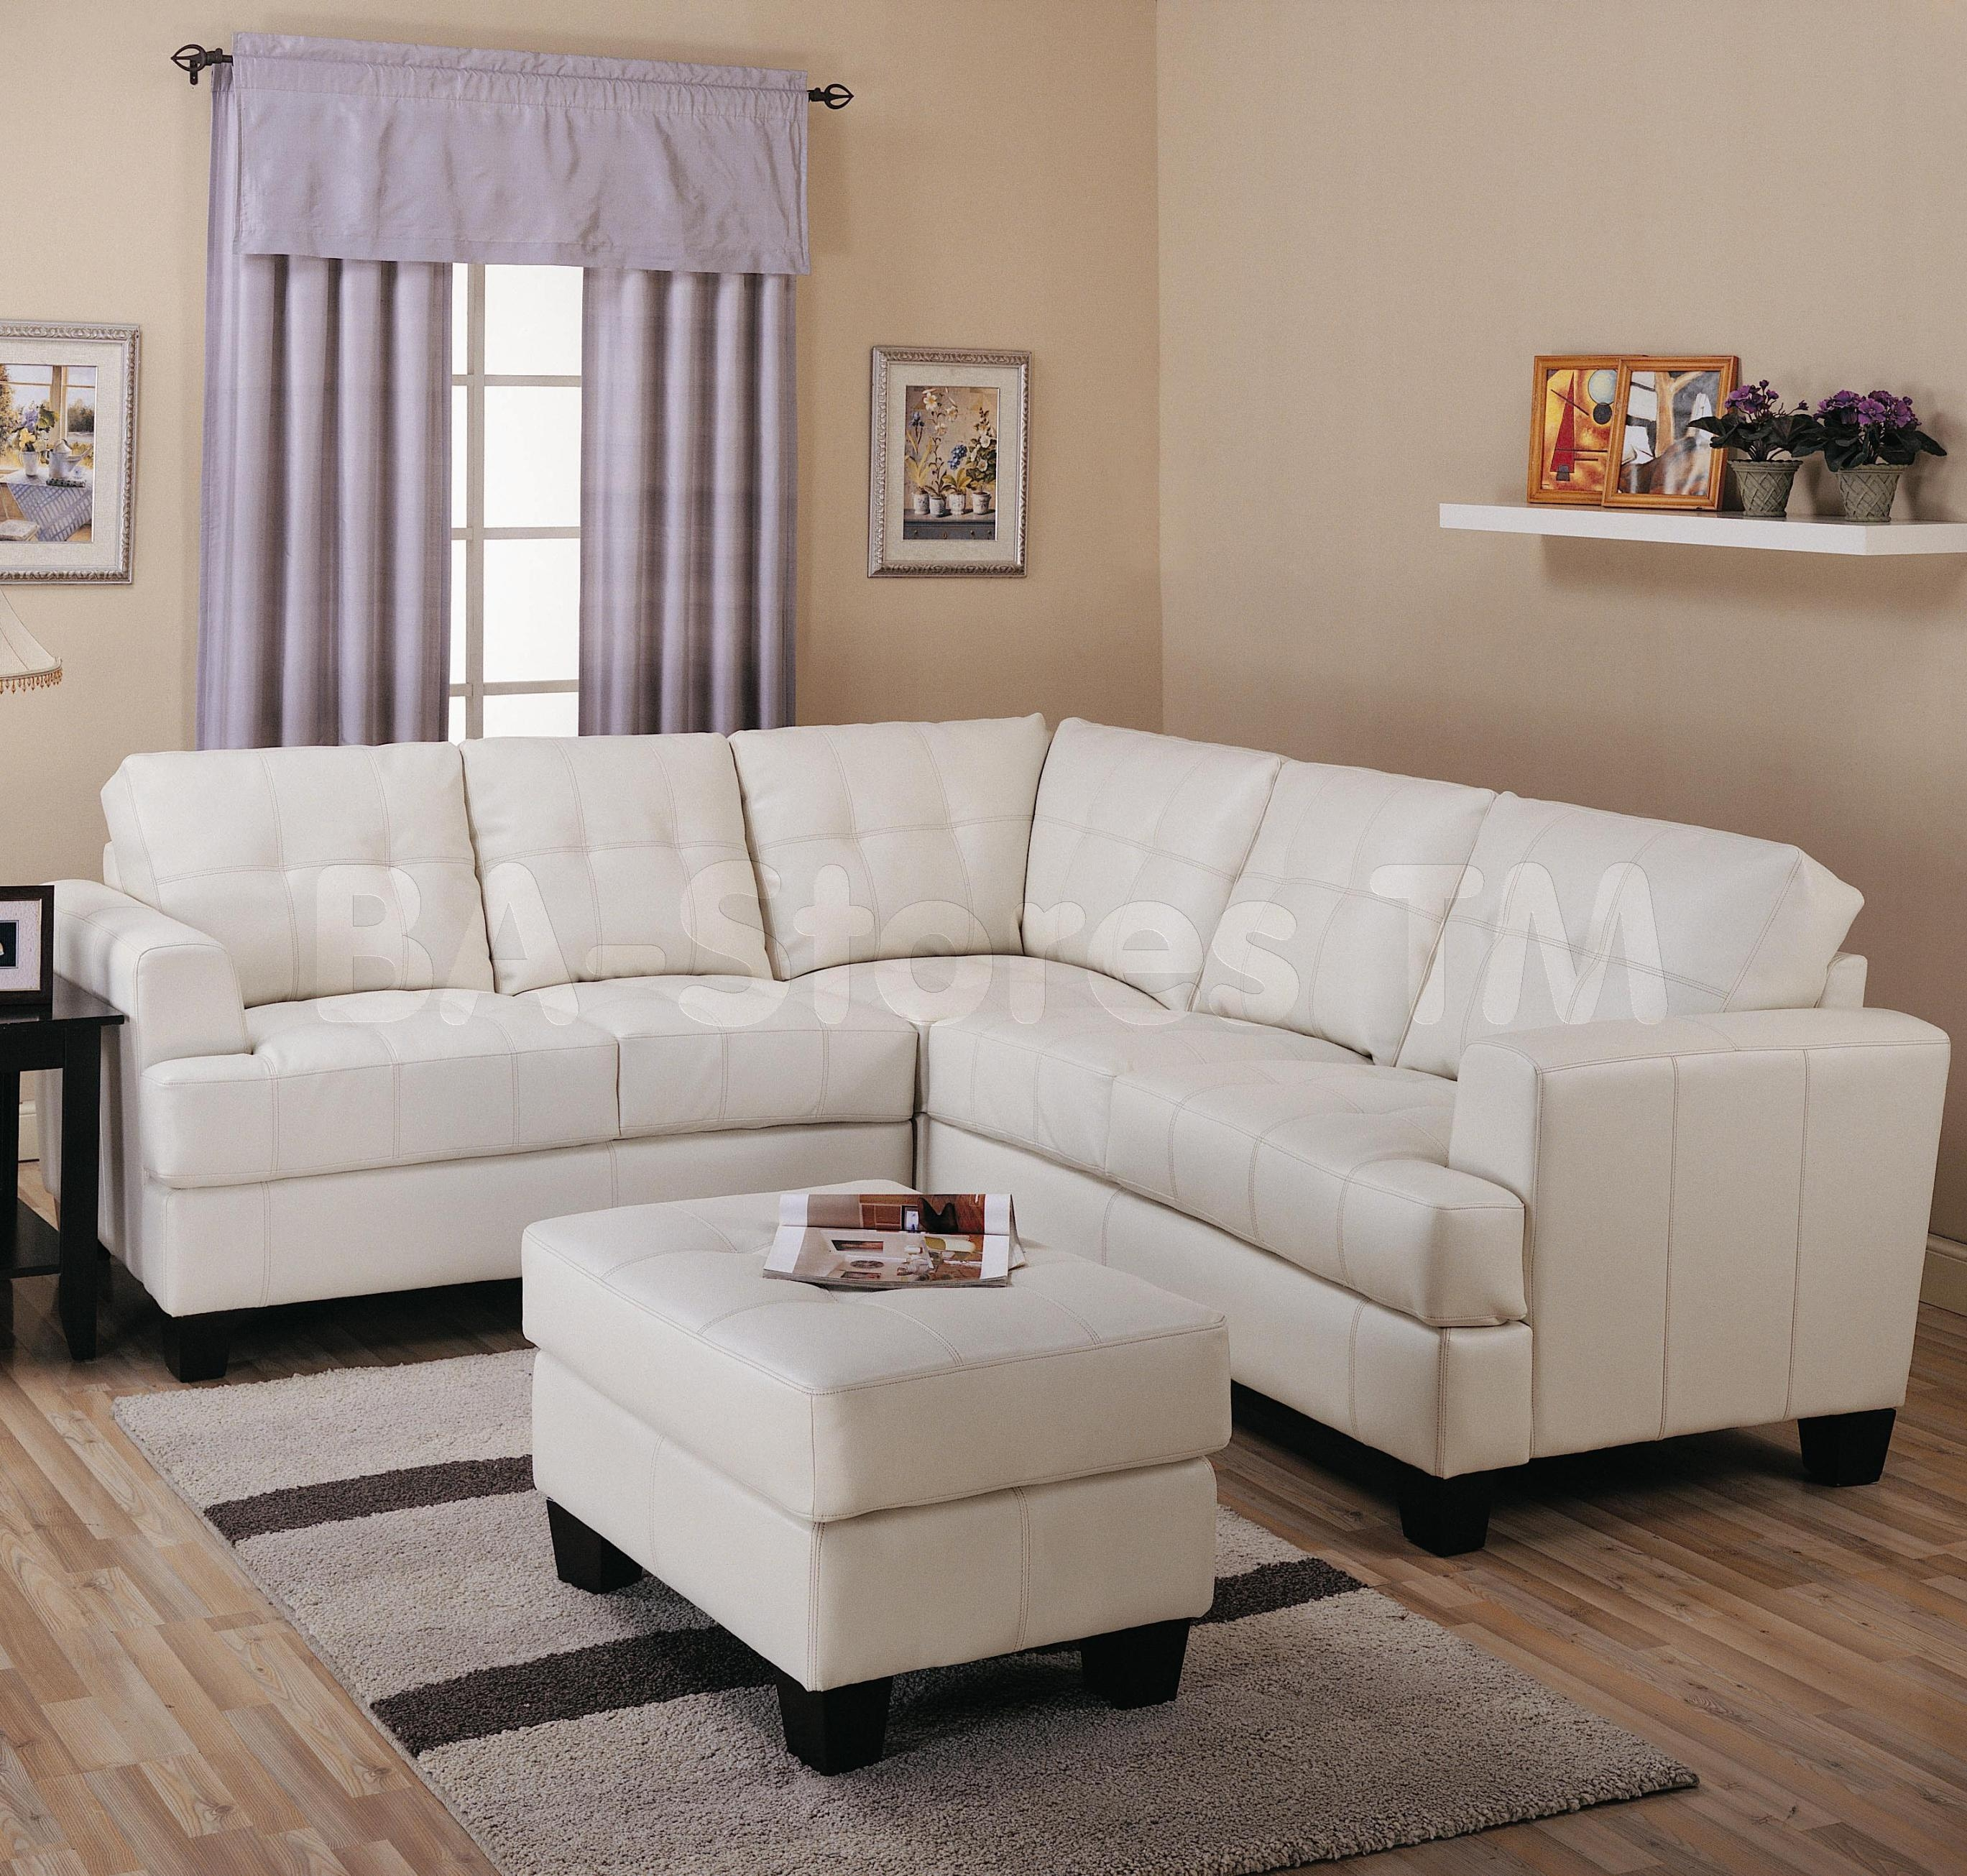 Cream Leather Sofa And Loveseat | Tehranmix Decoration Pertaining To Off White Leather Sofa And Loveseat (Image 3 of 20)